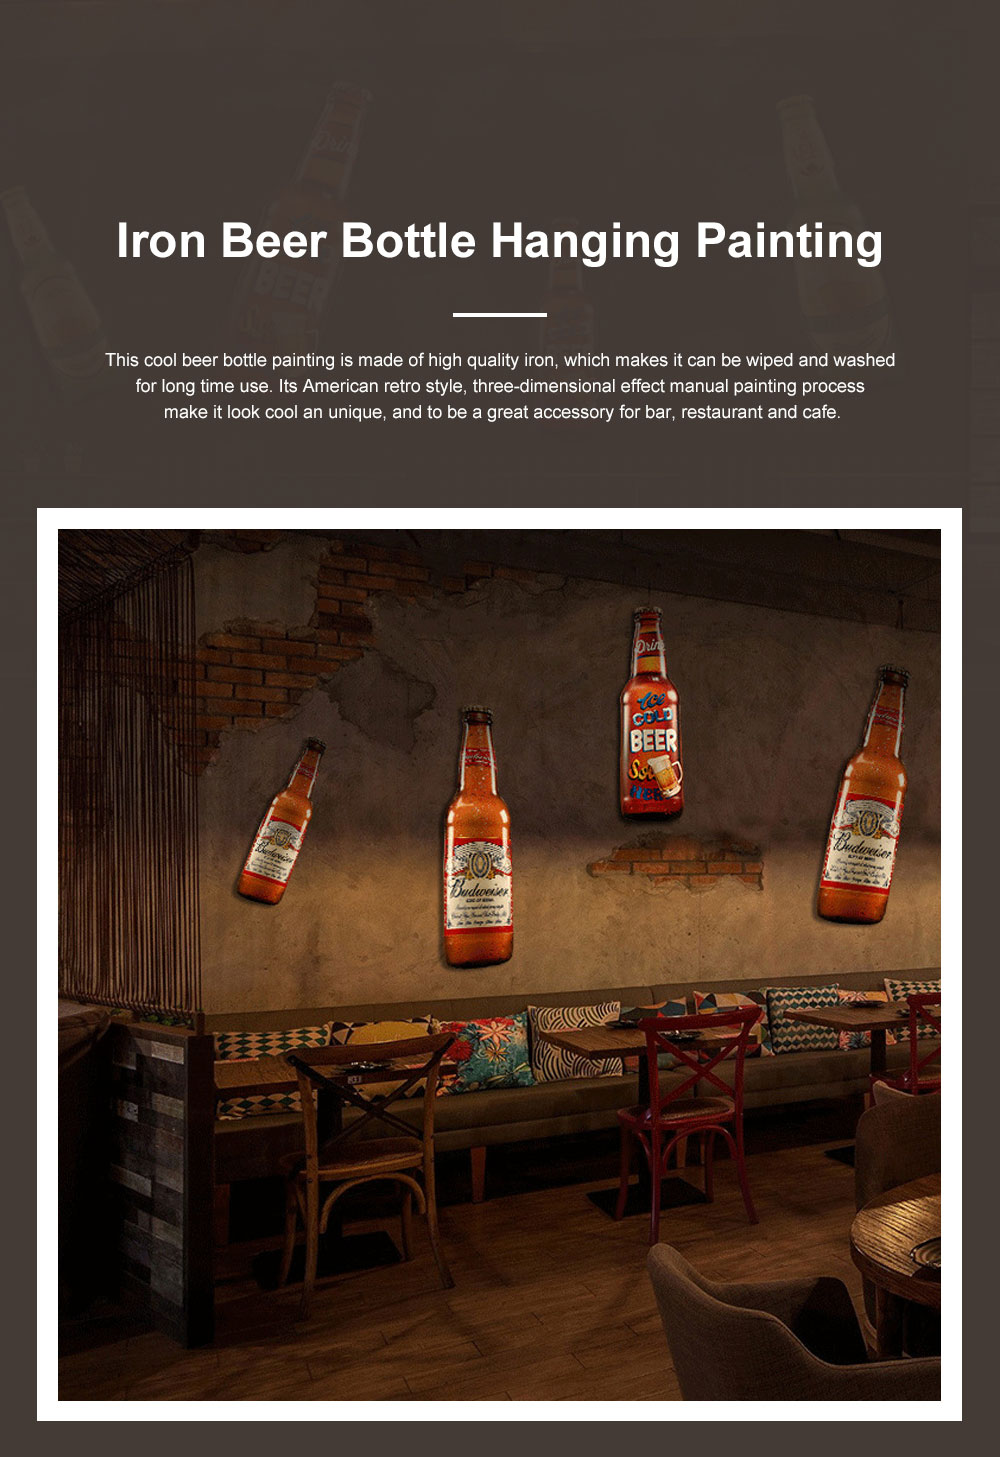 Iron Beer Bottle 3D Hanging Wall-mounted Painting Three-Dimensional Beer Bottle for Cafe Restaurant Decoration Home Art Painting 0